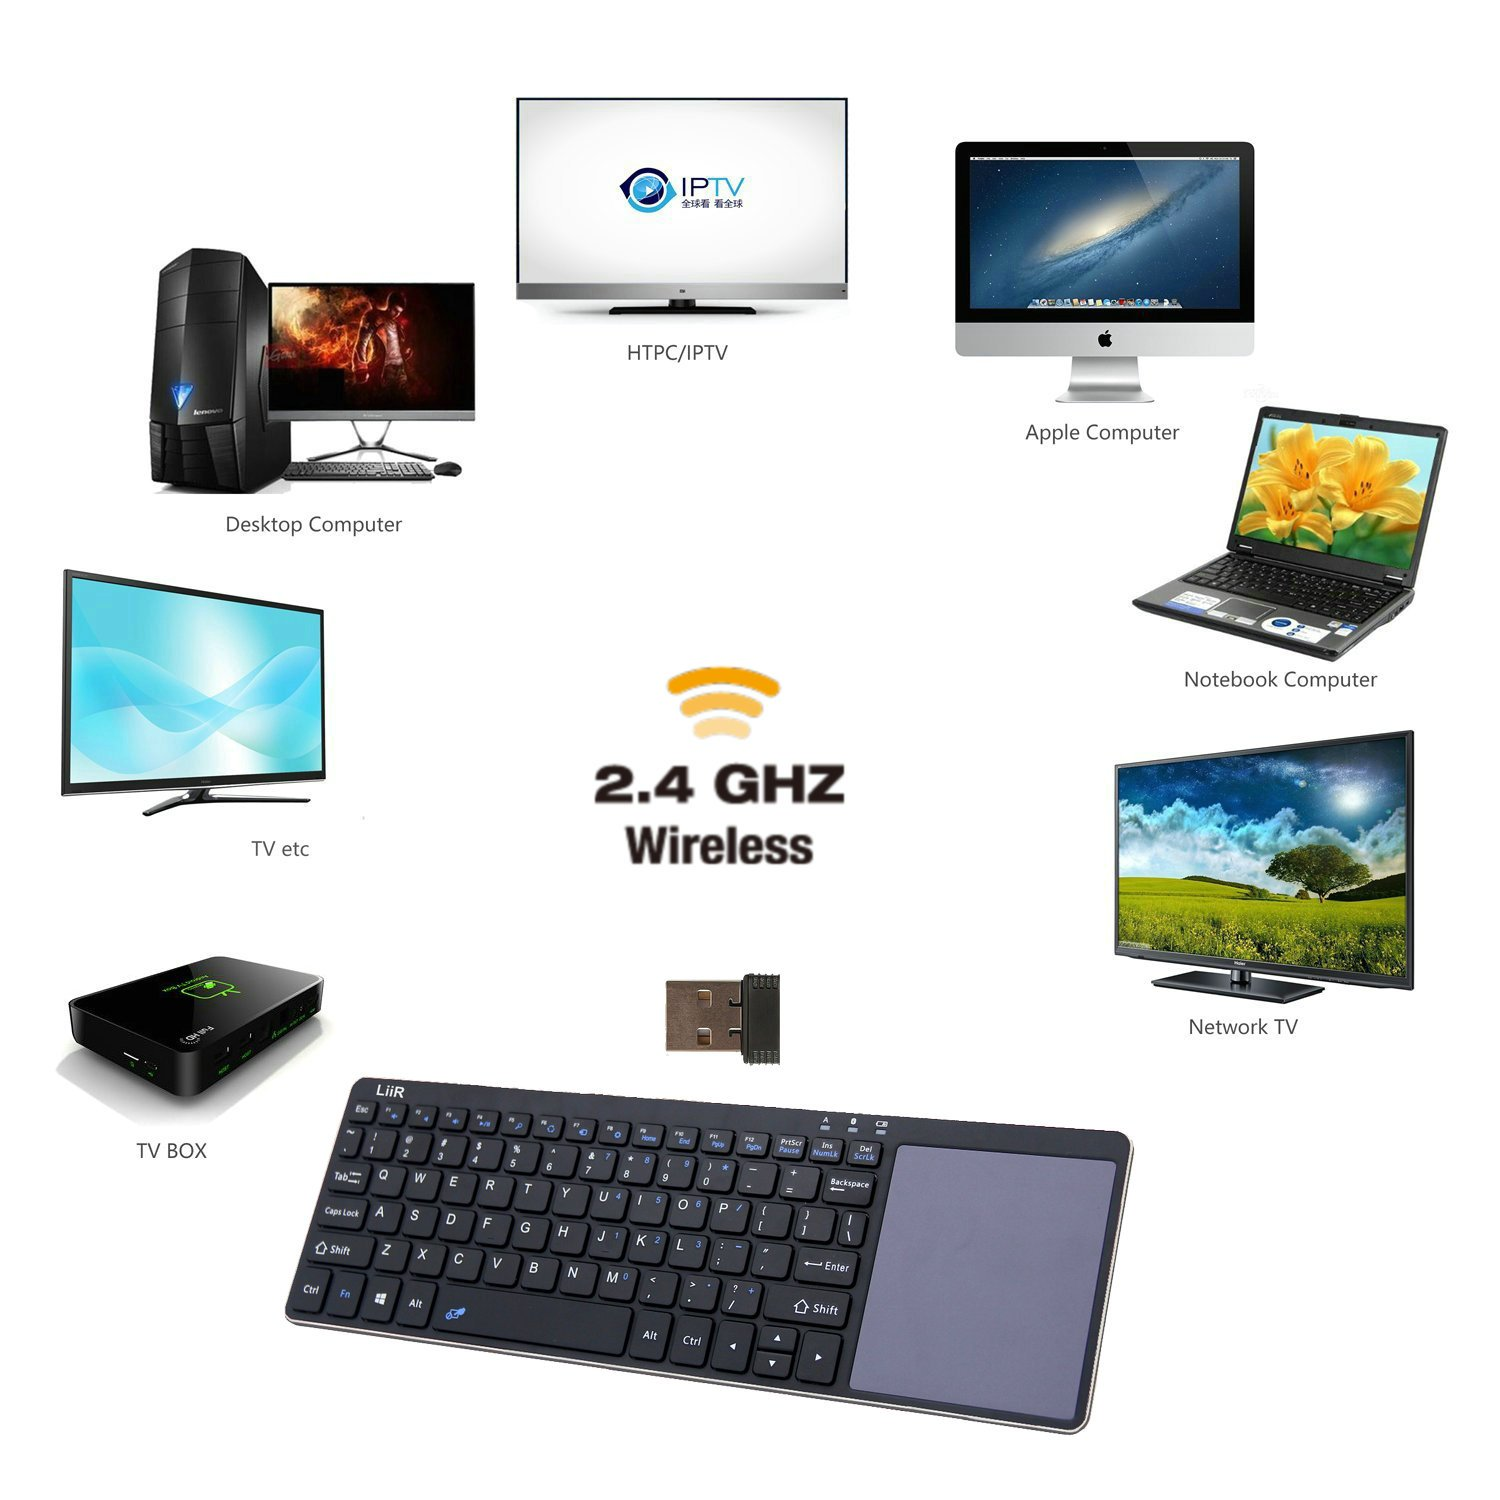 Linux//Android iOS Tablet PC//Galaxy Tabs/& Smart Phone LIIR Wireless Bluetooth Keyboard with Multi Touchpad,Touch Keyboard for Windows no Battery Black